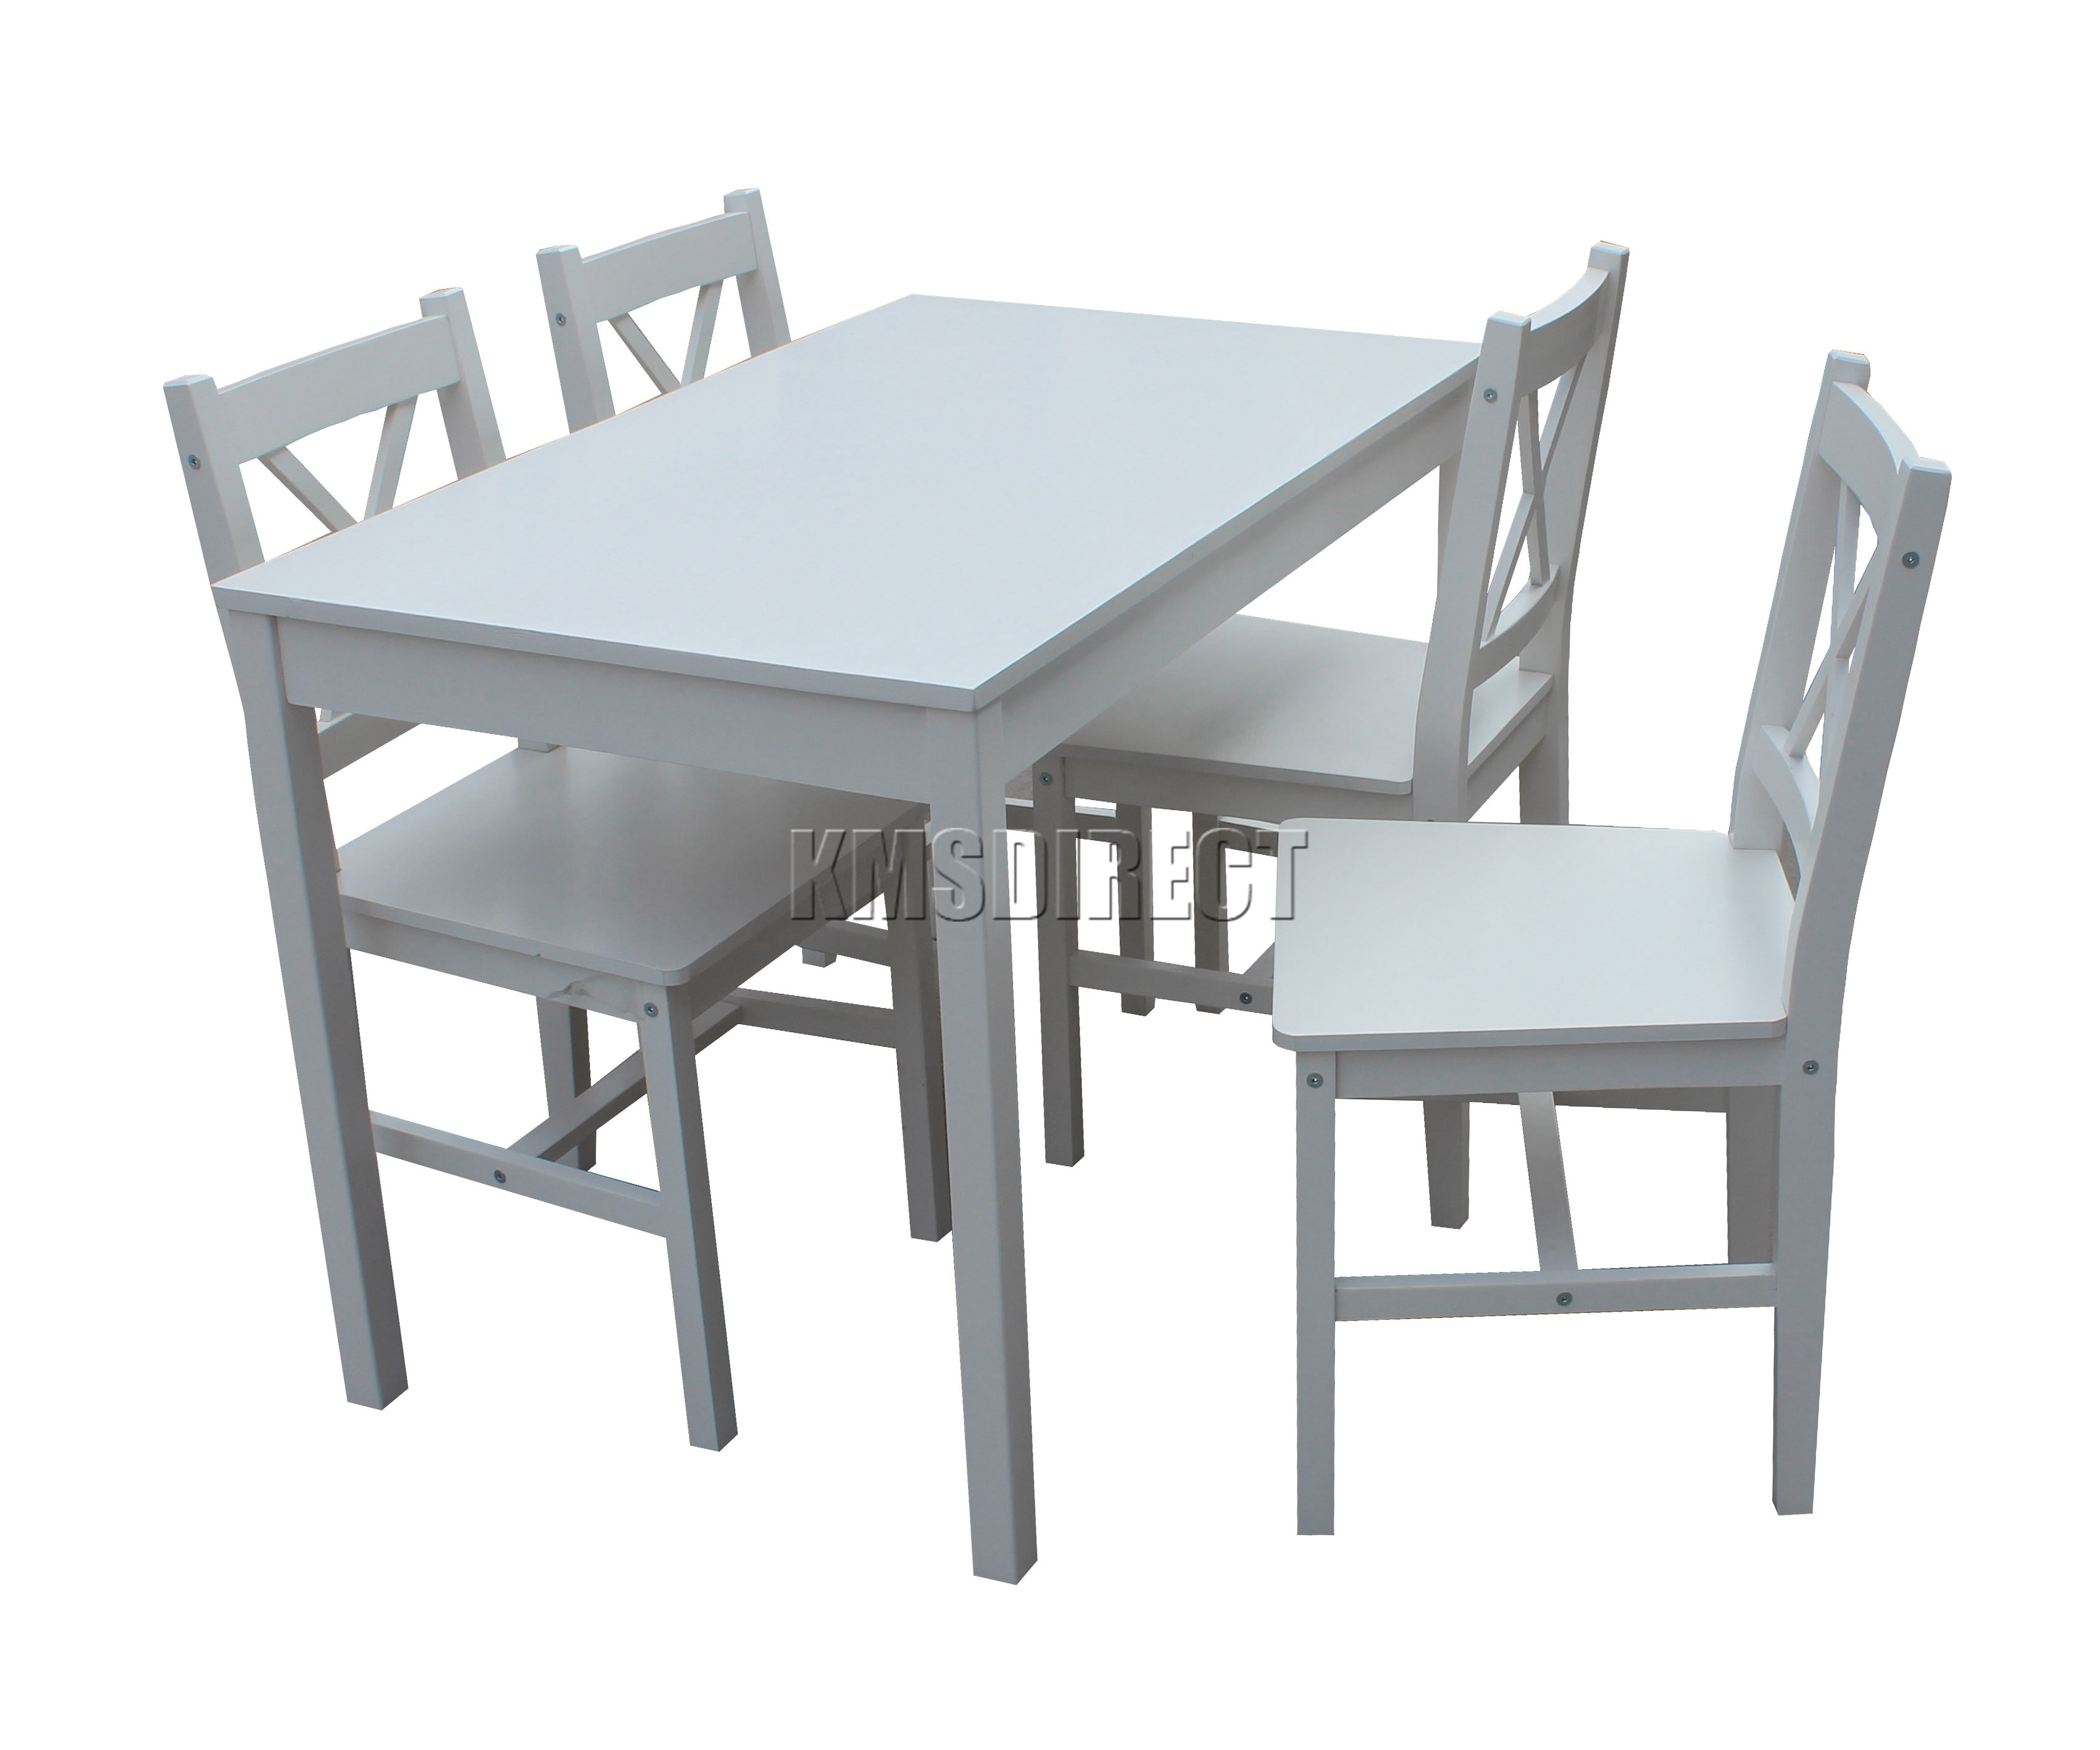 SPARE REPAIR Solid Wooden Dining Table With 4 Chairs Set